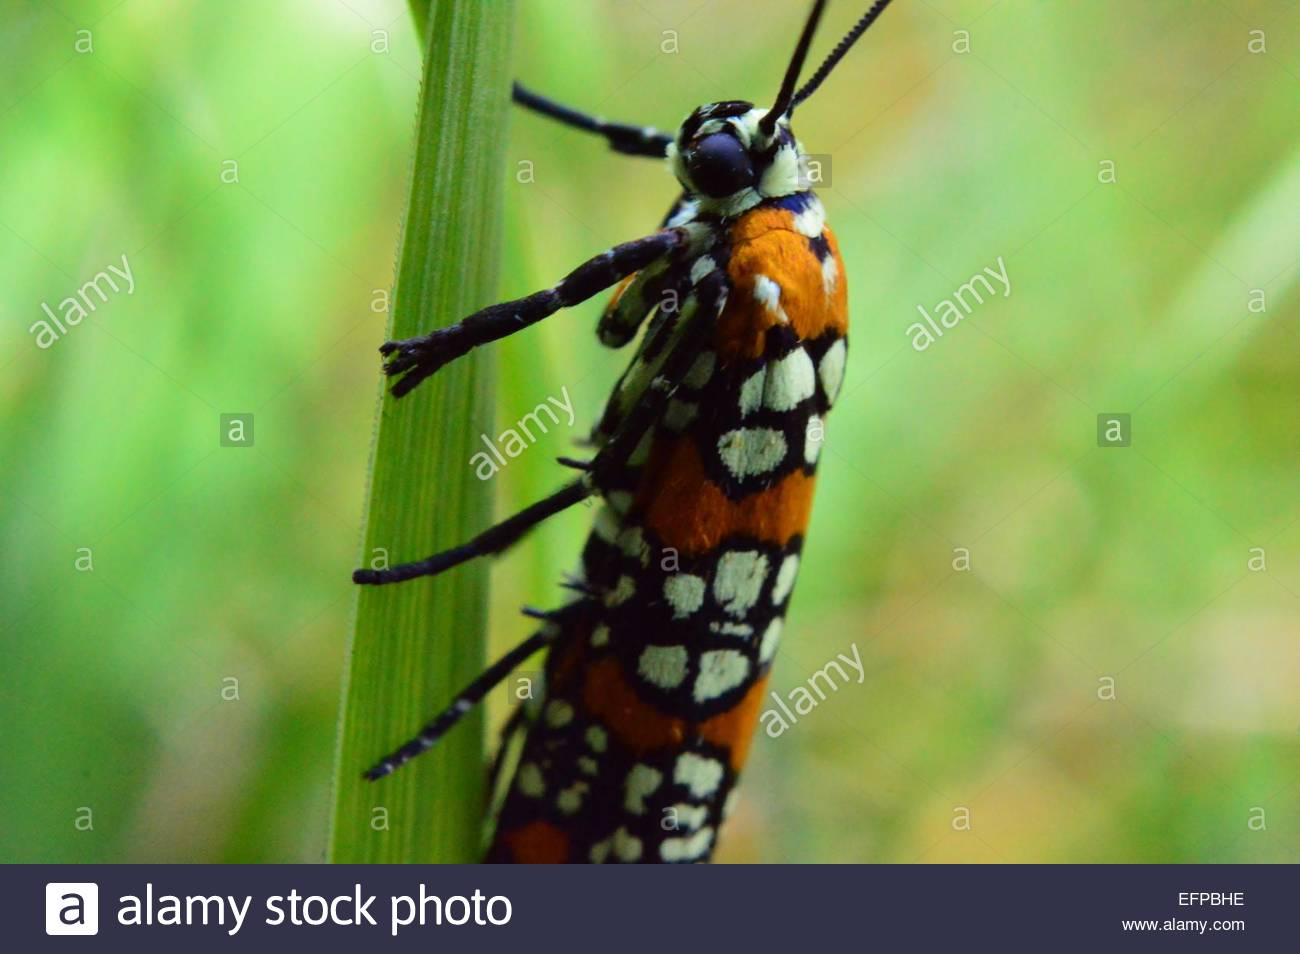 Close-up of caterpillar on blade of glass - Stock Image